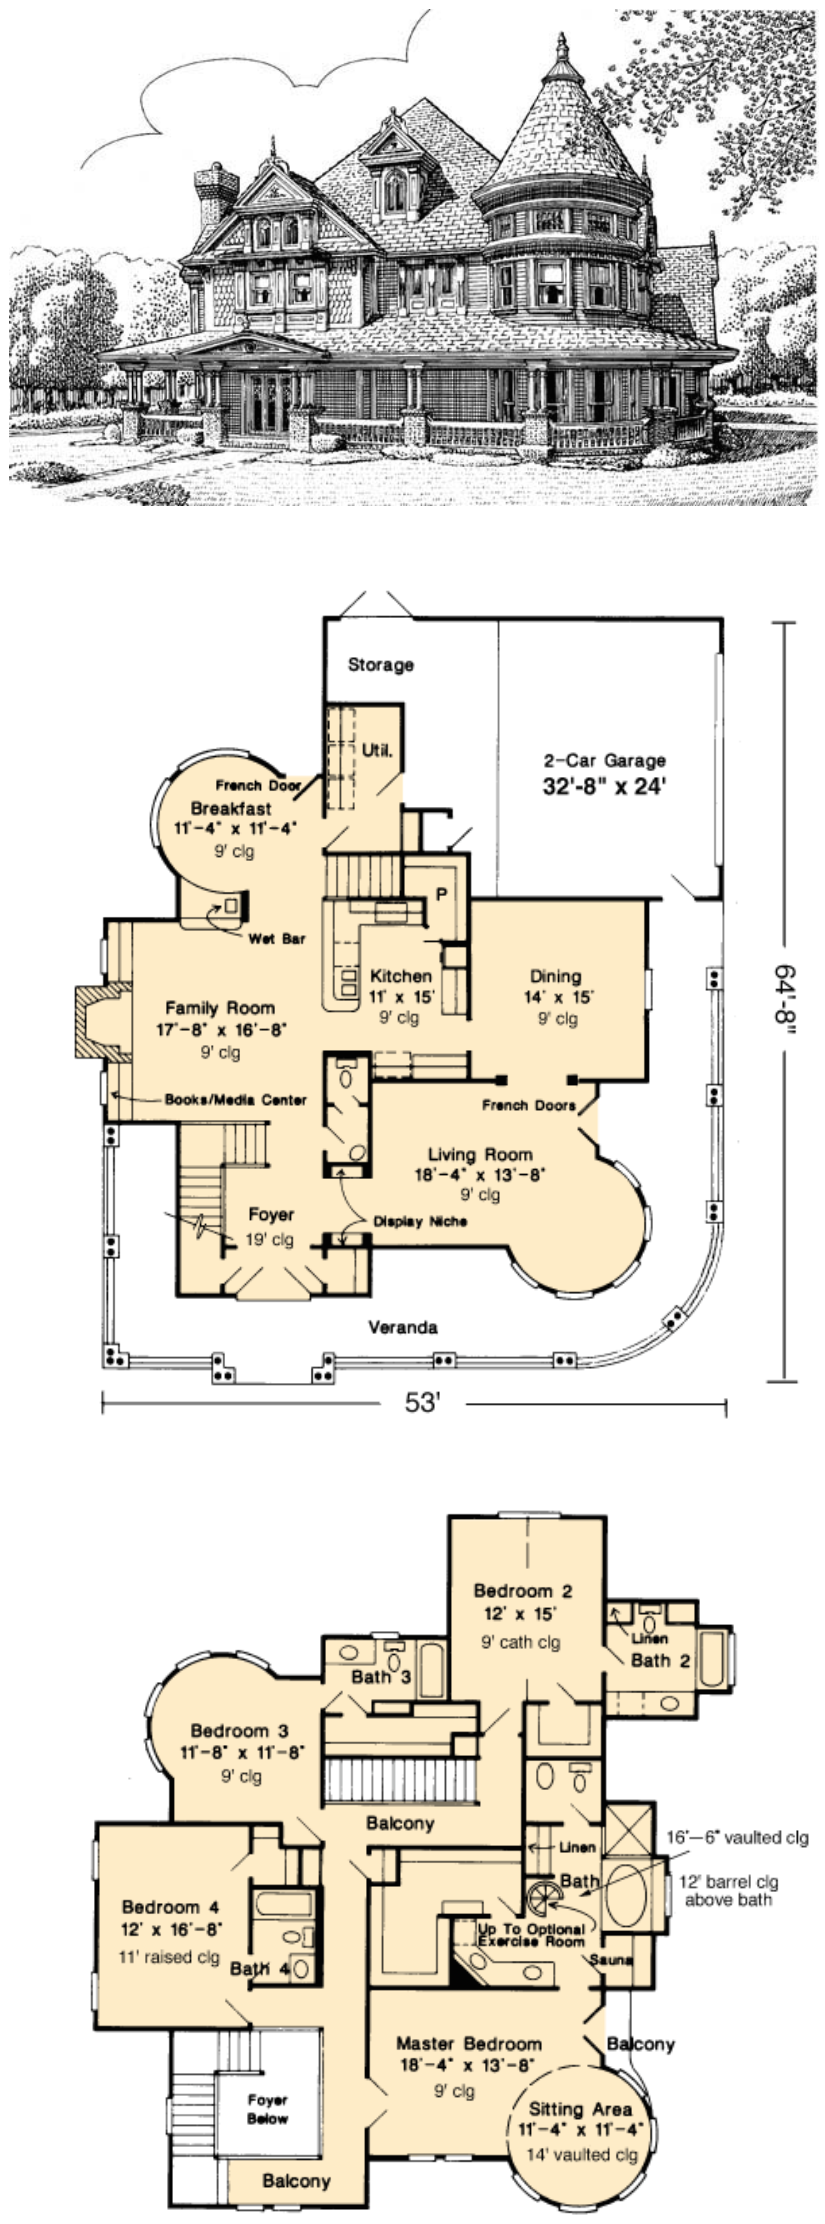 Country Farmhouse Victorian House Plan 95539 | Country farmhouse ...